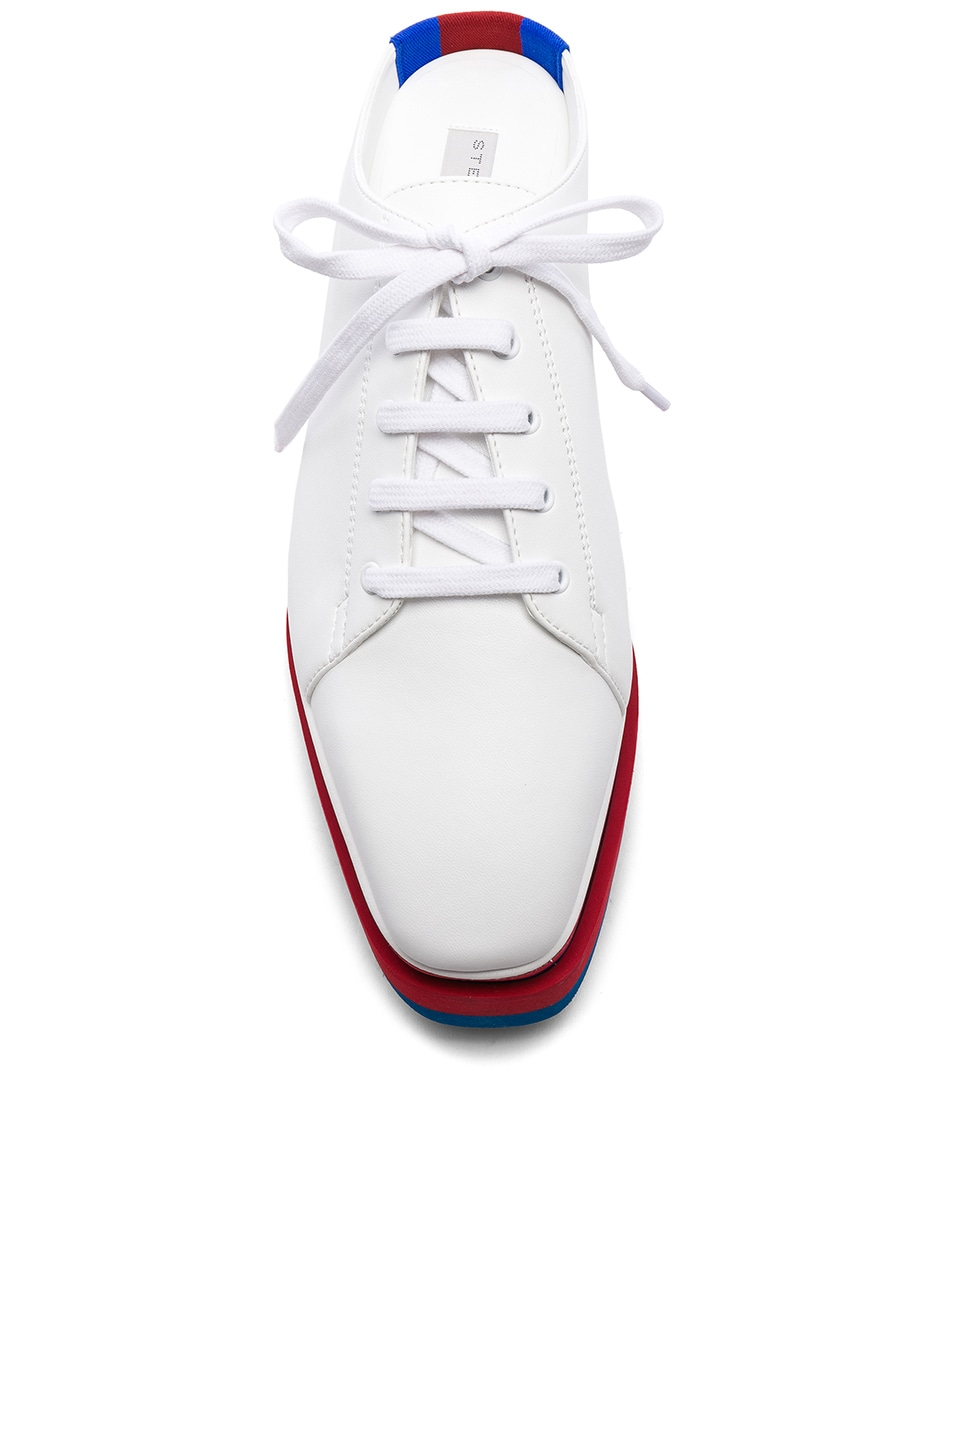 Image 4 of Stella McCartney Platform Wedge Oxford Mules in White, Red & Blue